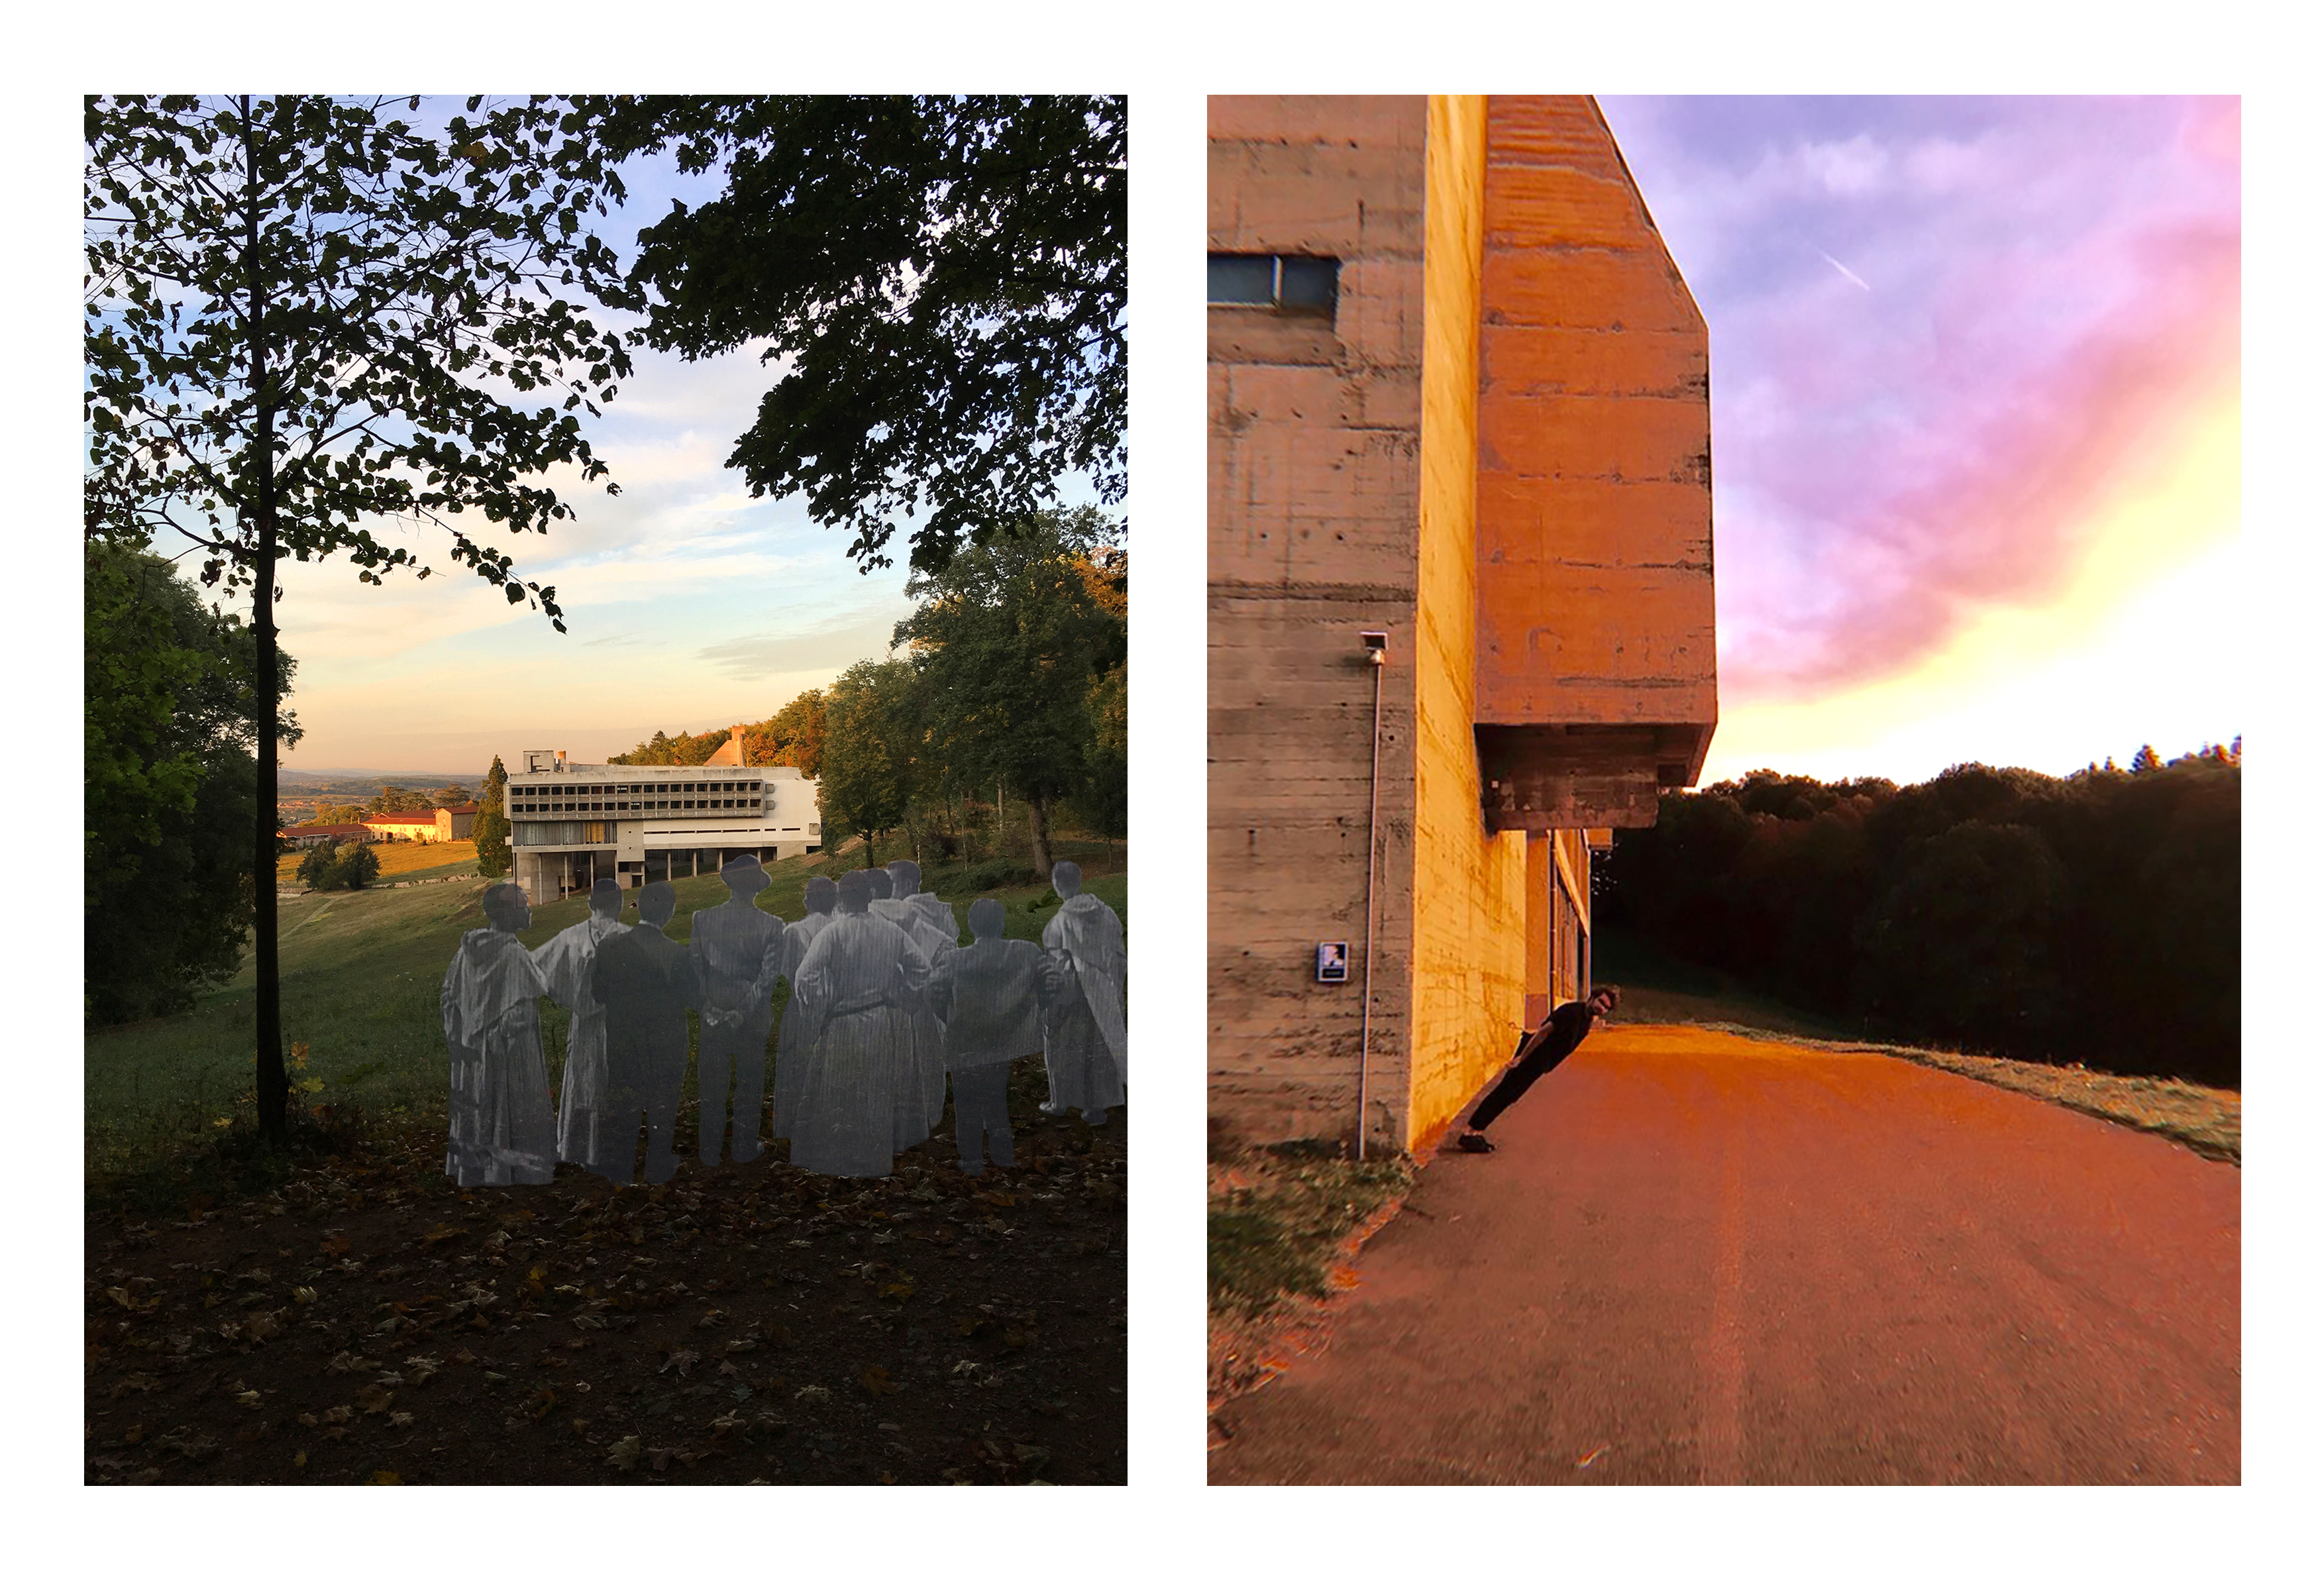 Two pictures manipulated by students. They exaggerate their inspirations in each photo.